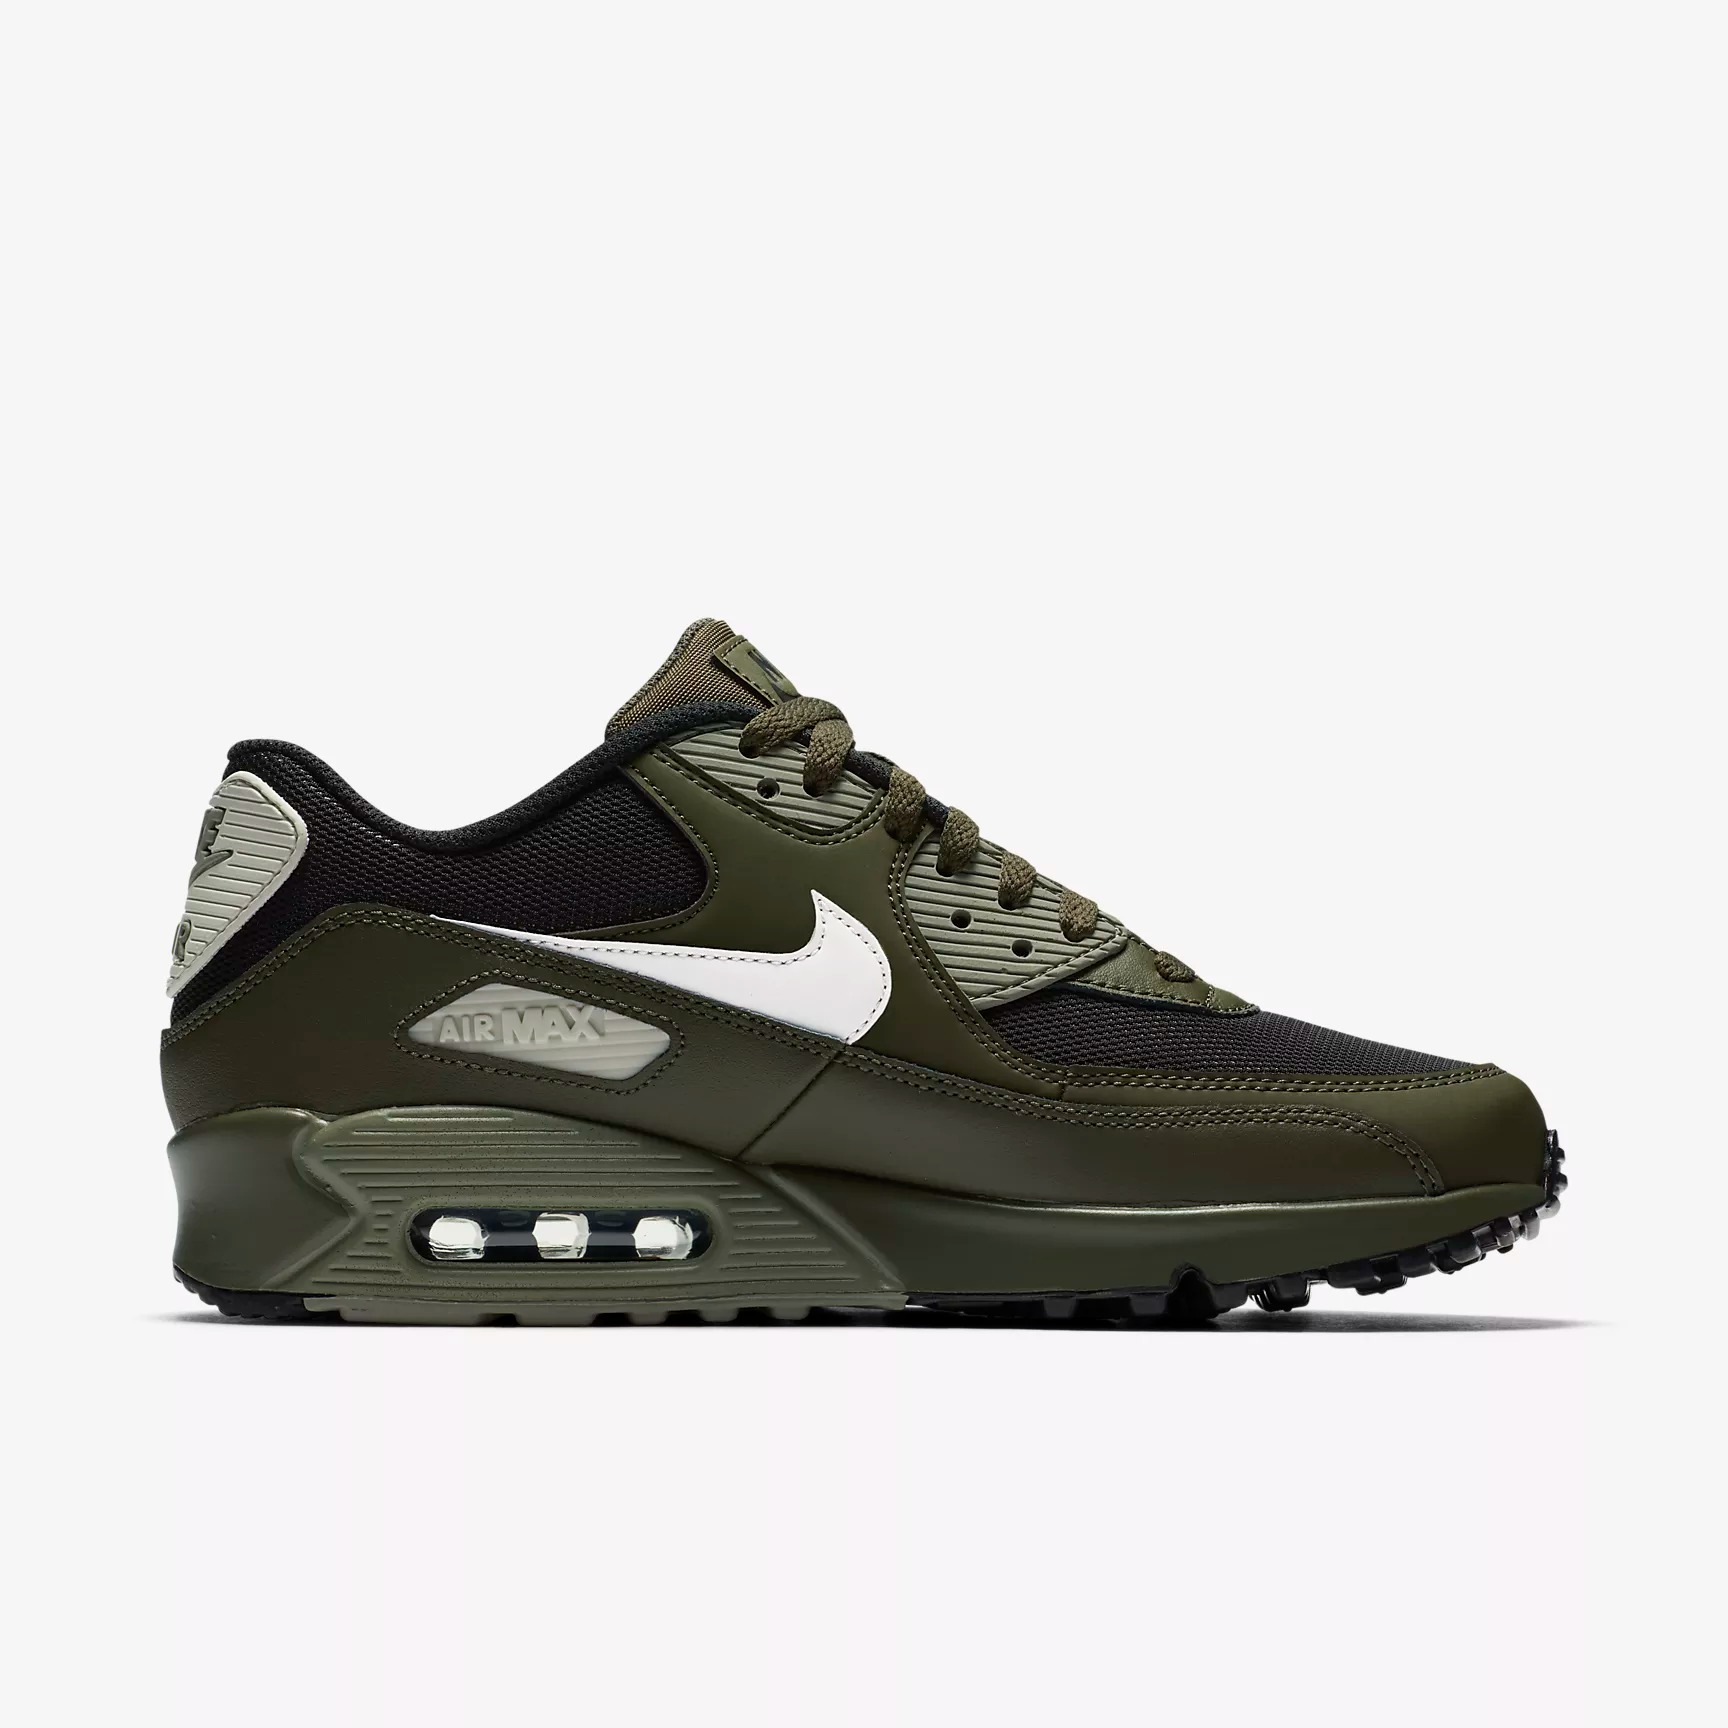 nike air max 90 essential sneakers sport shoes lifestyle. Black Bedroom Furniture Sets. Home Design Ideas